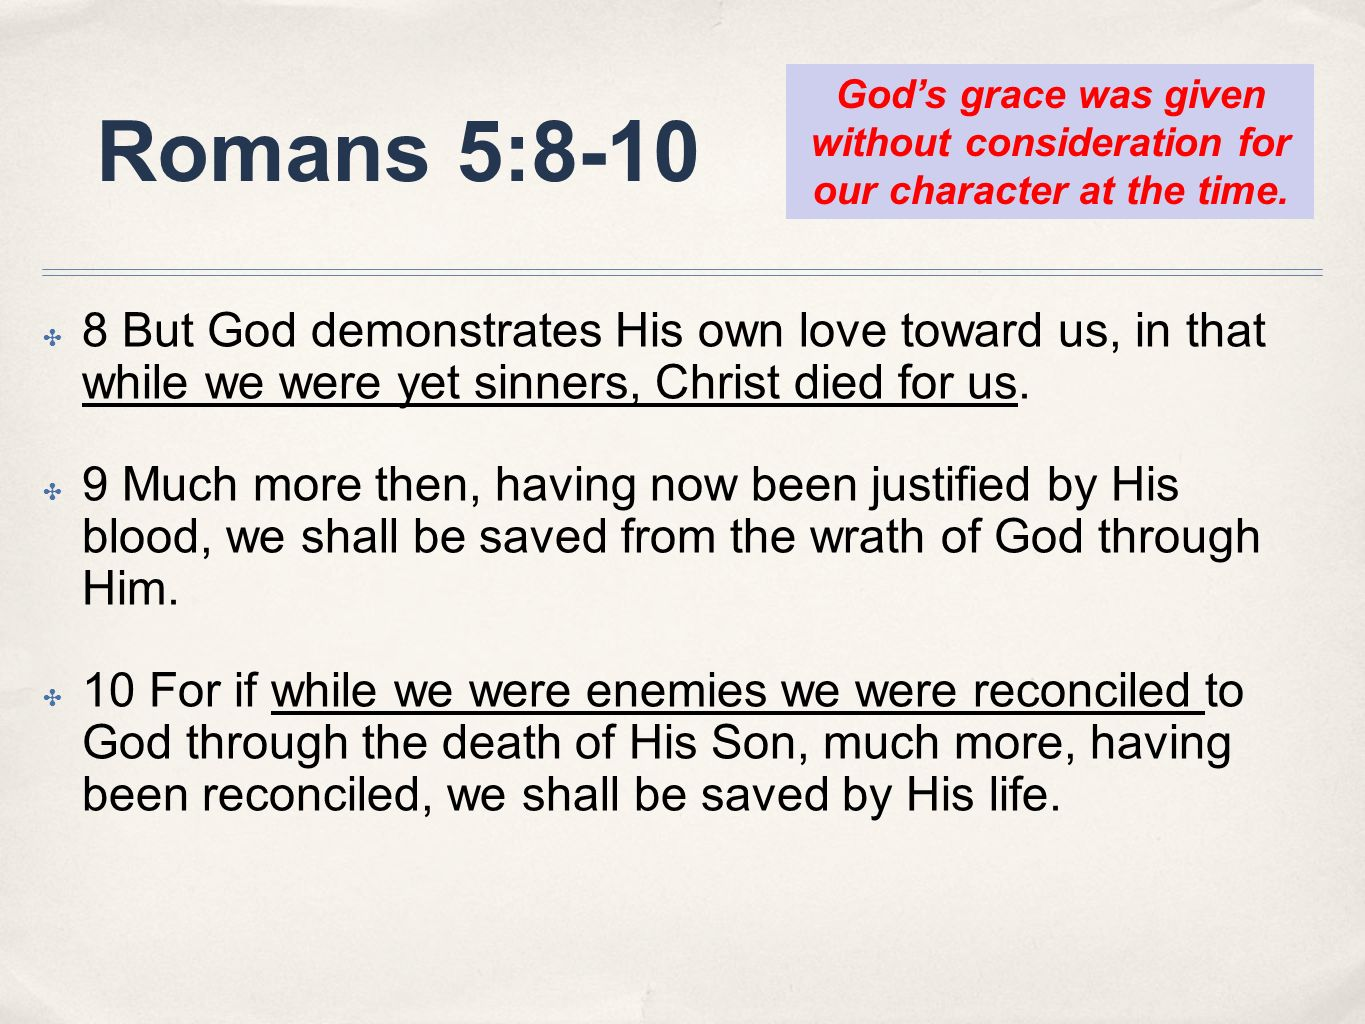 Romans 5:8-10 8 But God demonstrates His own love toward us, in that while we were yet sinners, Christ died for us. 9 Much more then, having now been